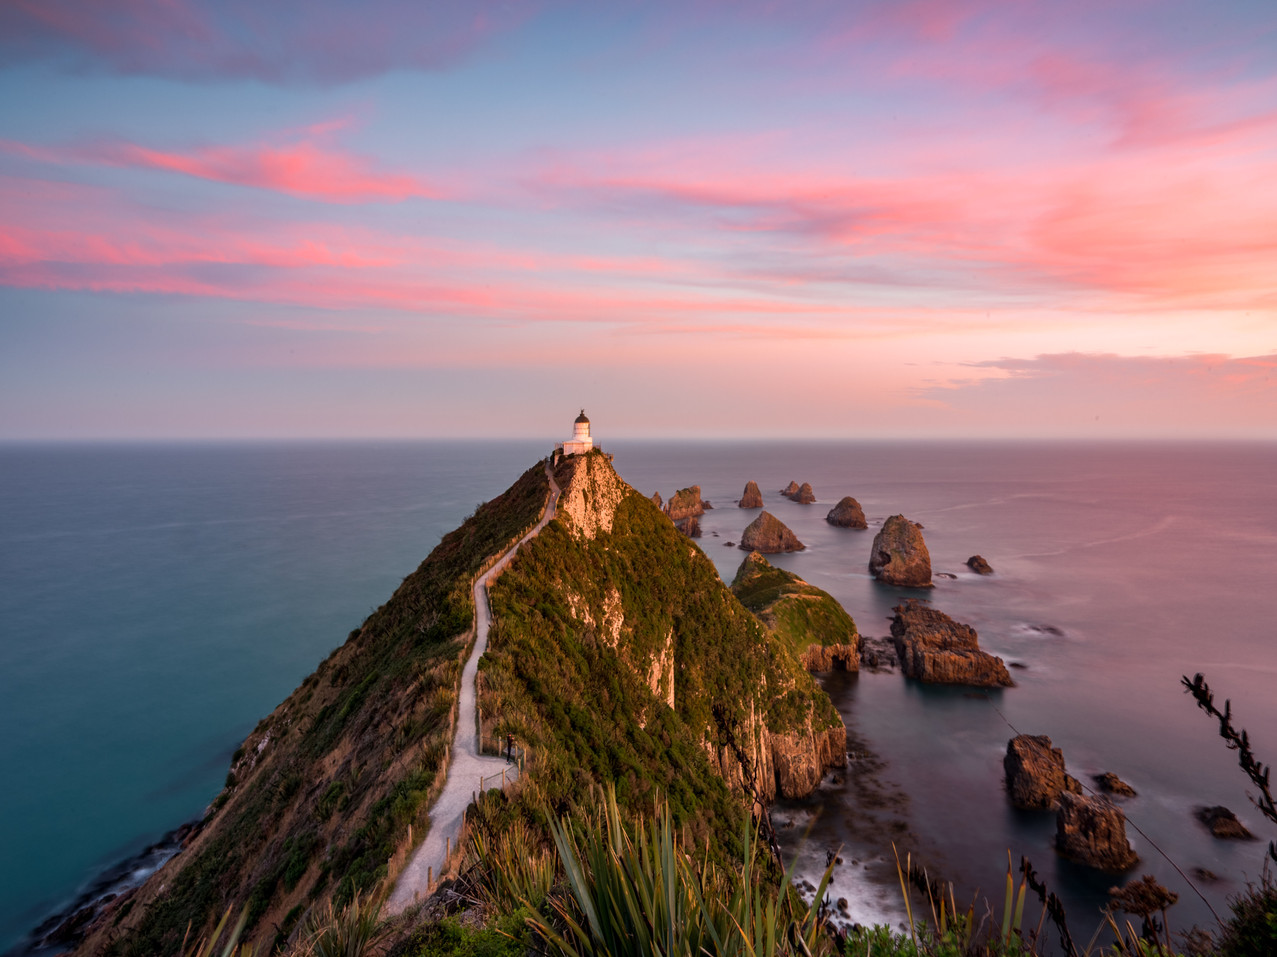 Sunset Nugget Point Lighthouse New Zealand NZ The Catlins